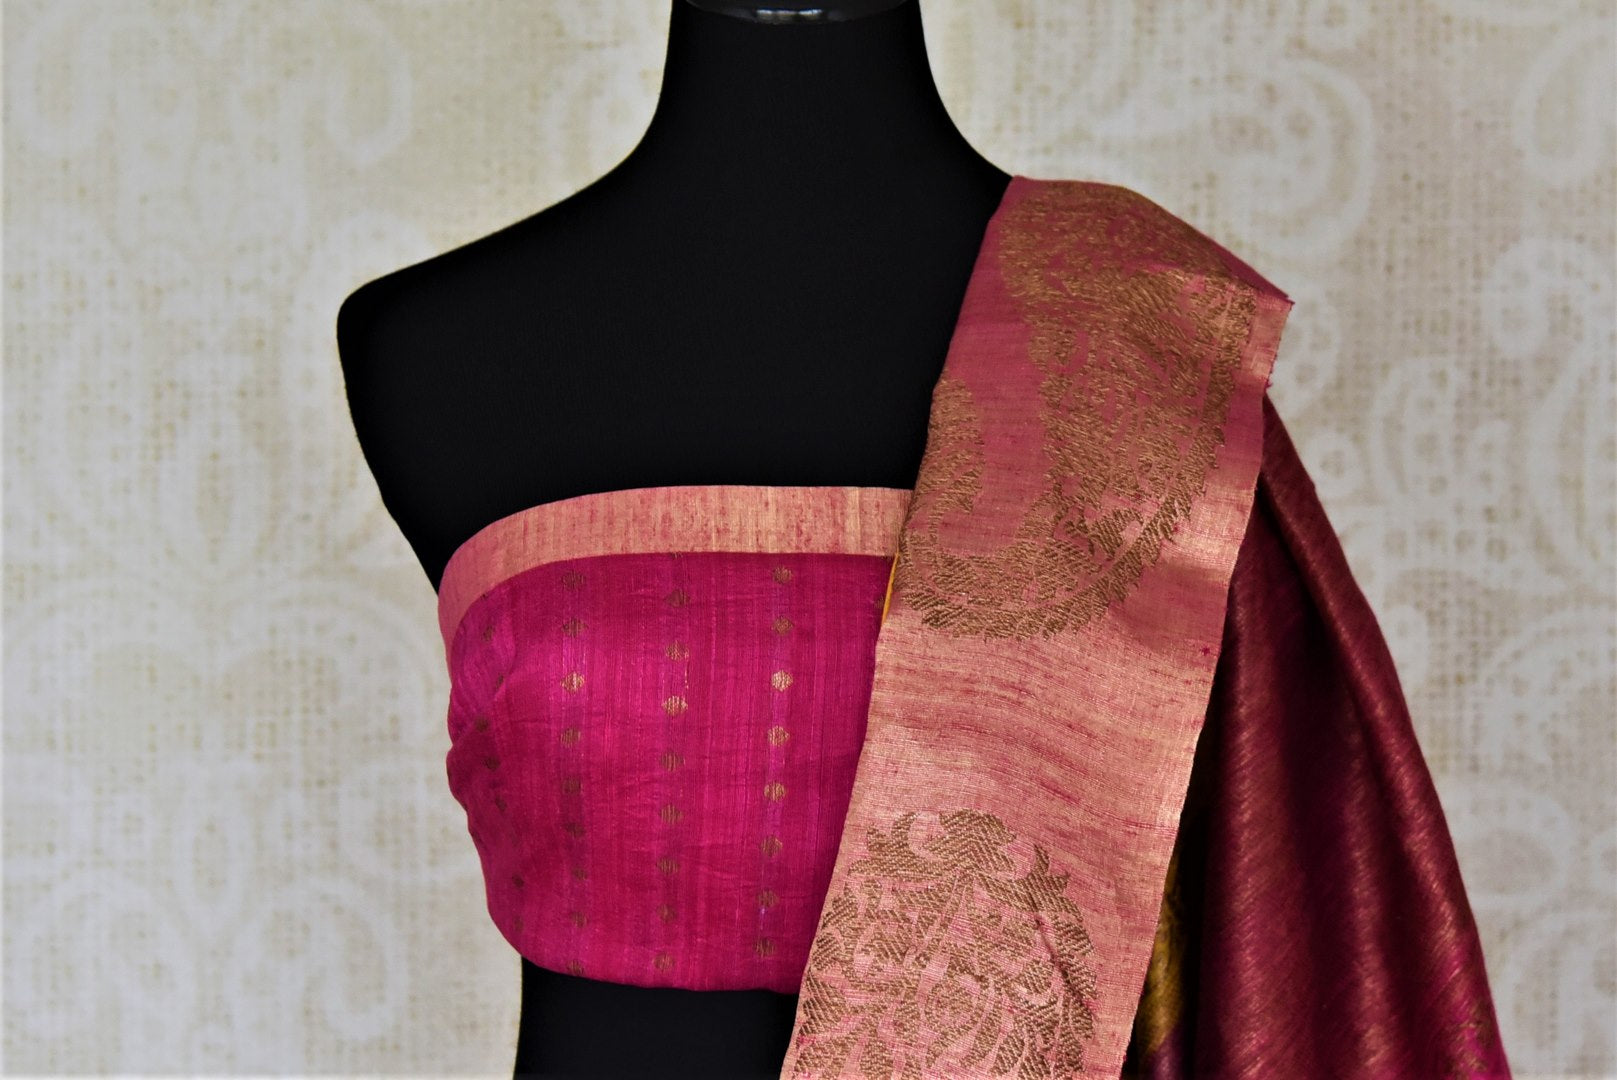 Buy bright yellow tussar Banarsi saree online in USA with zari work on pink border. Choose tasteful handloom sarees for special occasions from Pure Elegance. Our exclusive Indian fashion store has a myriad of exquisite pure silk saris, tussar sarees, Banarasi sarees for Indian women in USA.-blouse pallu